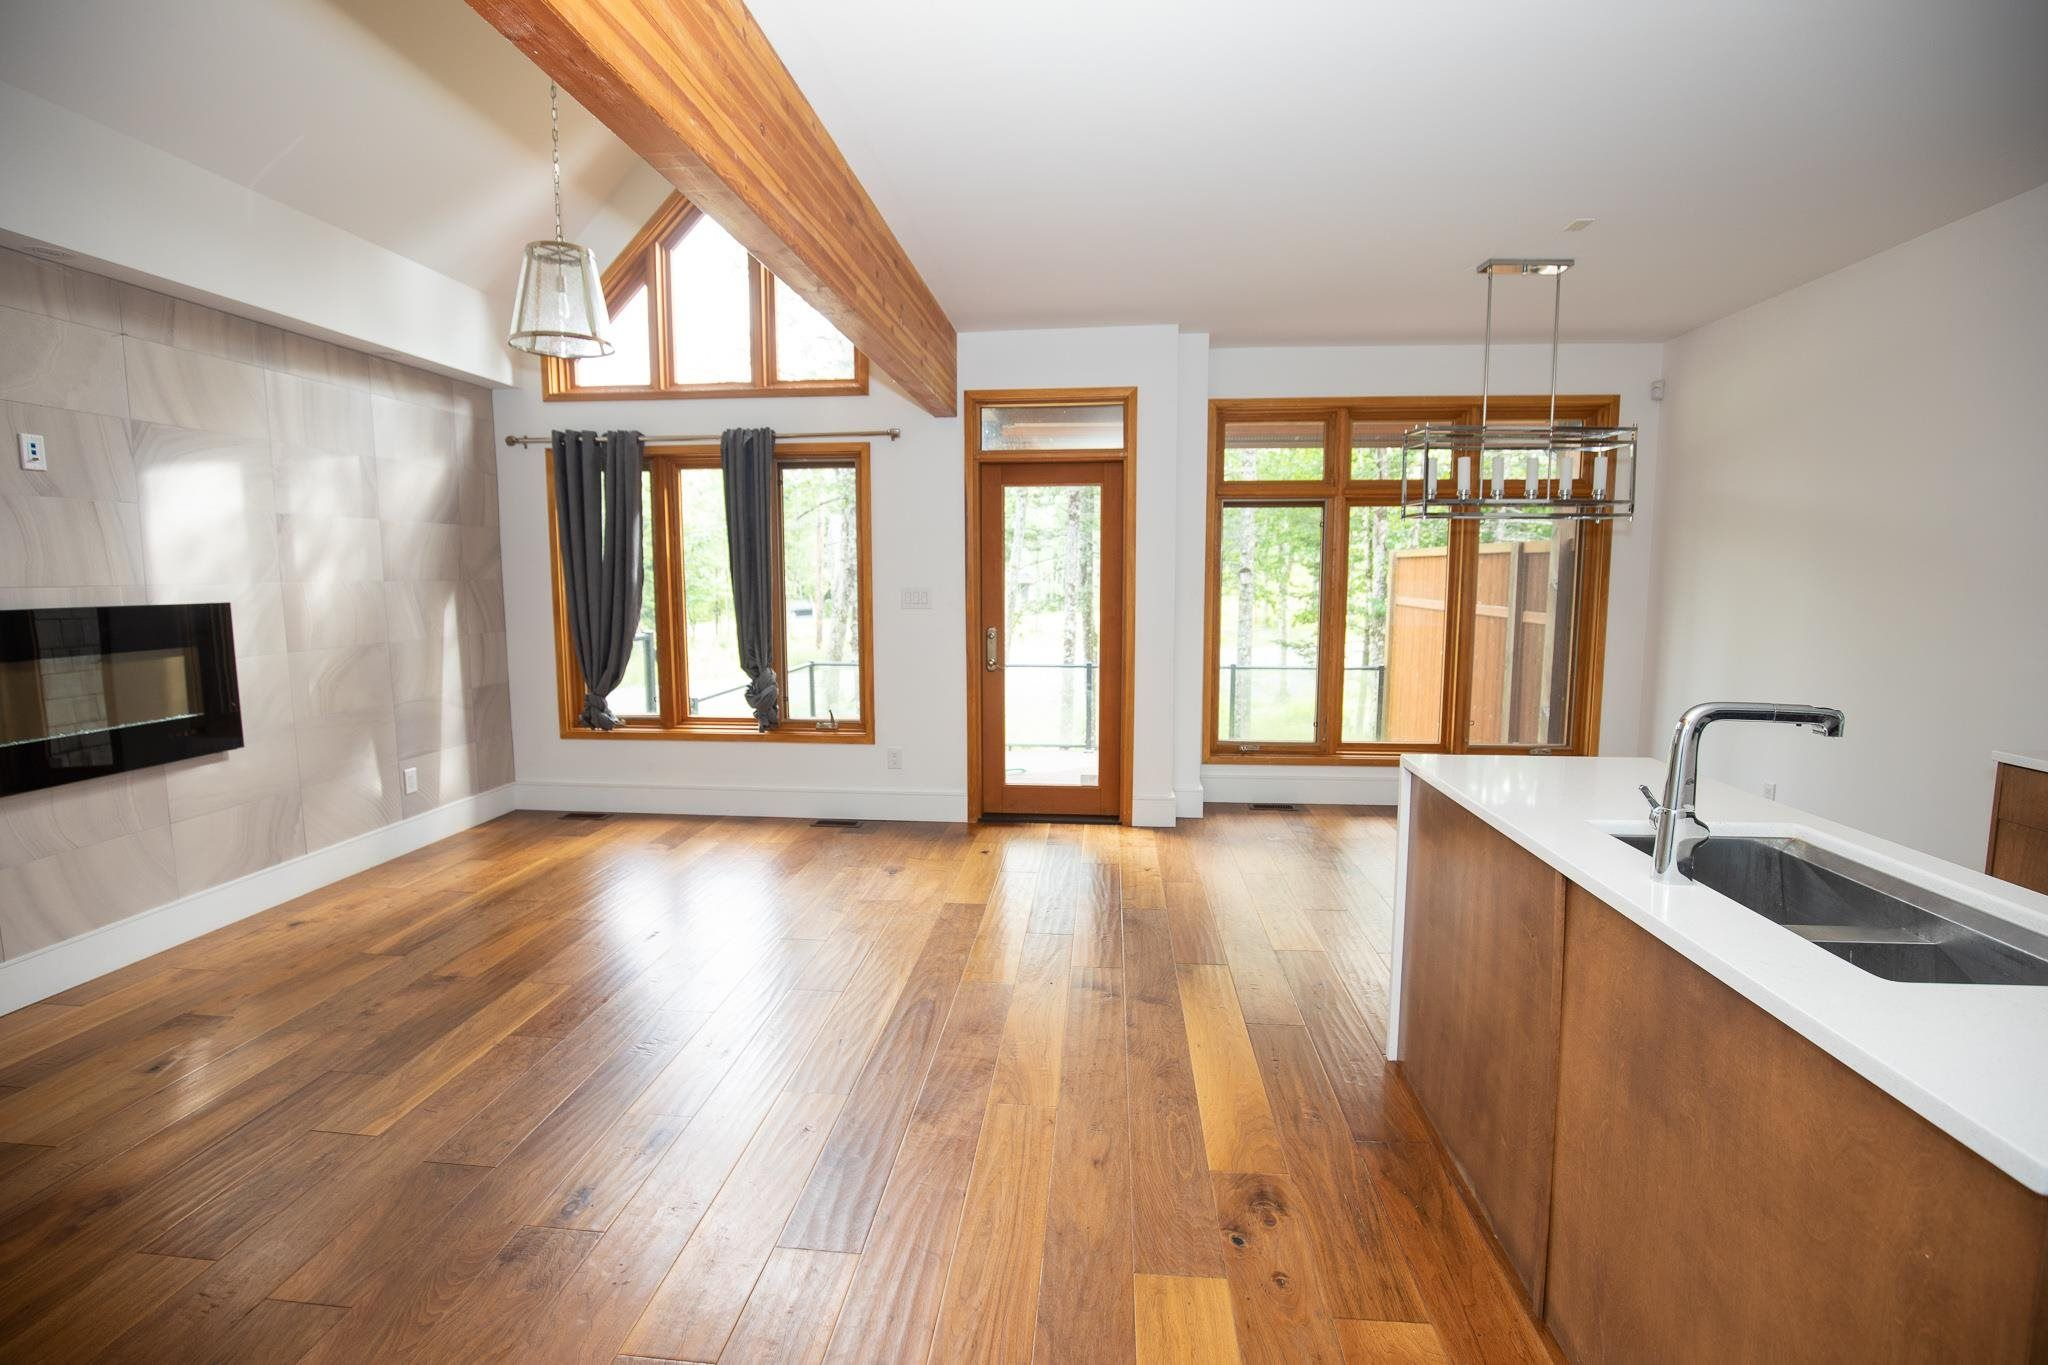 Photo 5: Photos: 7 Black Cherry Lane in Ardoise: 403-Hants County Residential for sale (Annapolis Valley)  : MLS®# 202118682